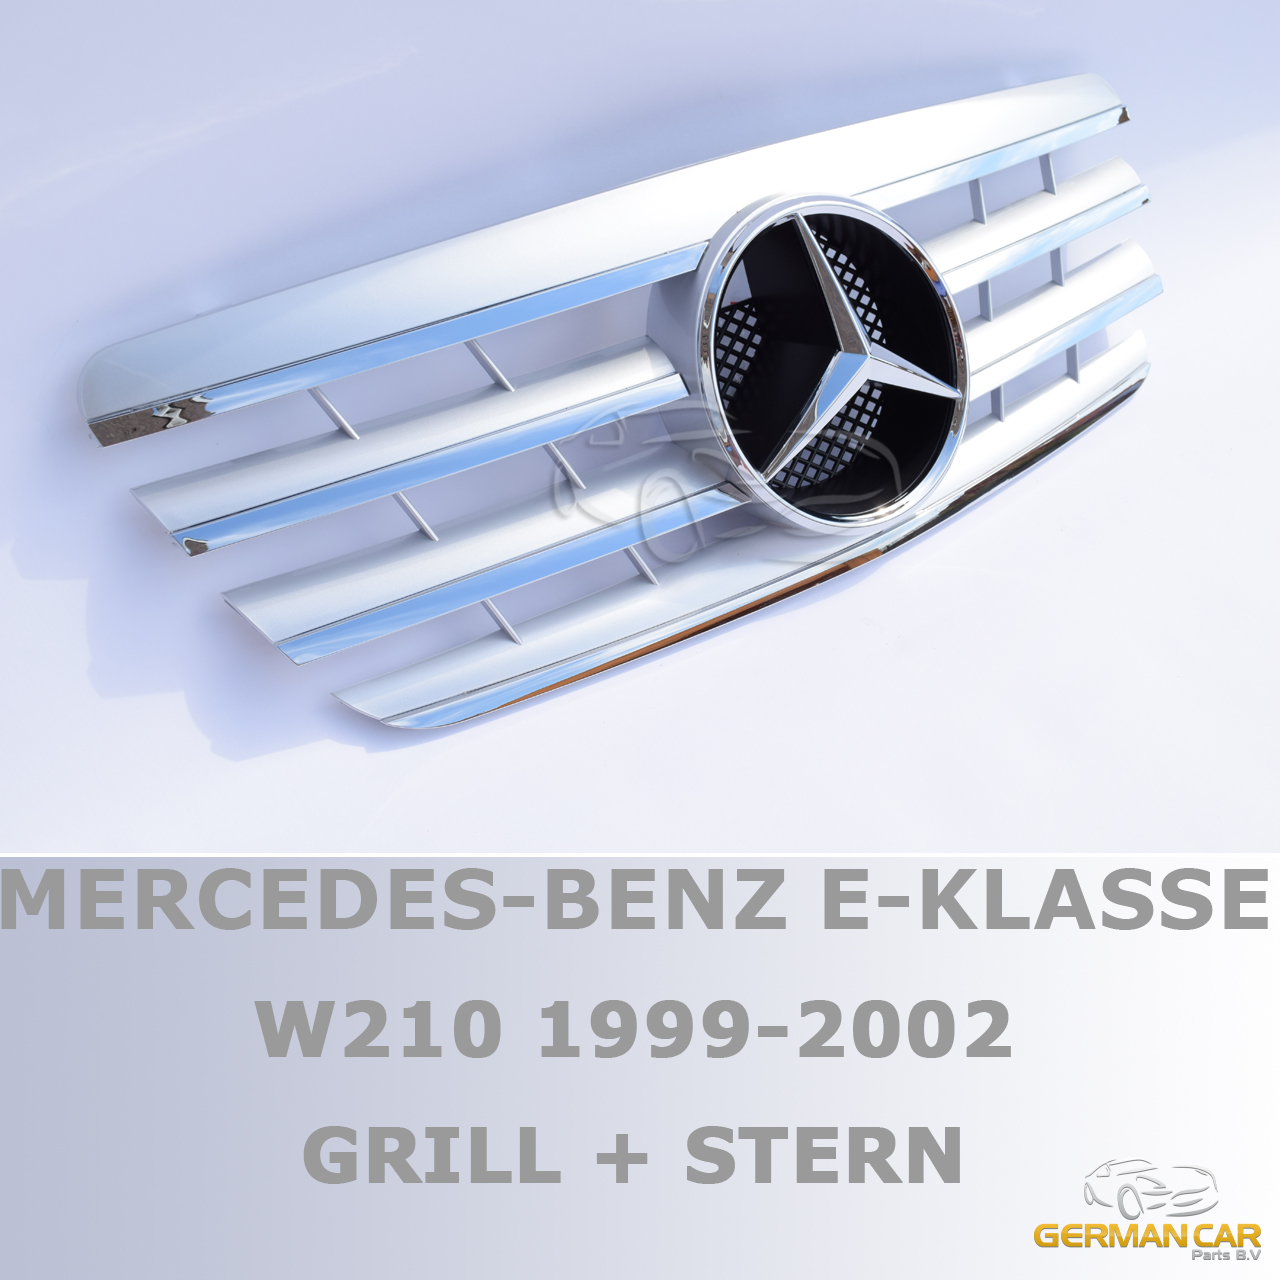 Grille sport for mercedes w210 s210 e 1999 2002 silver for Looking for mercedes benz parts